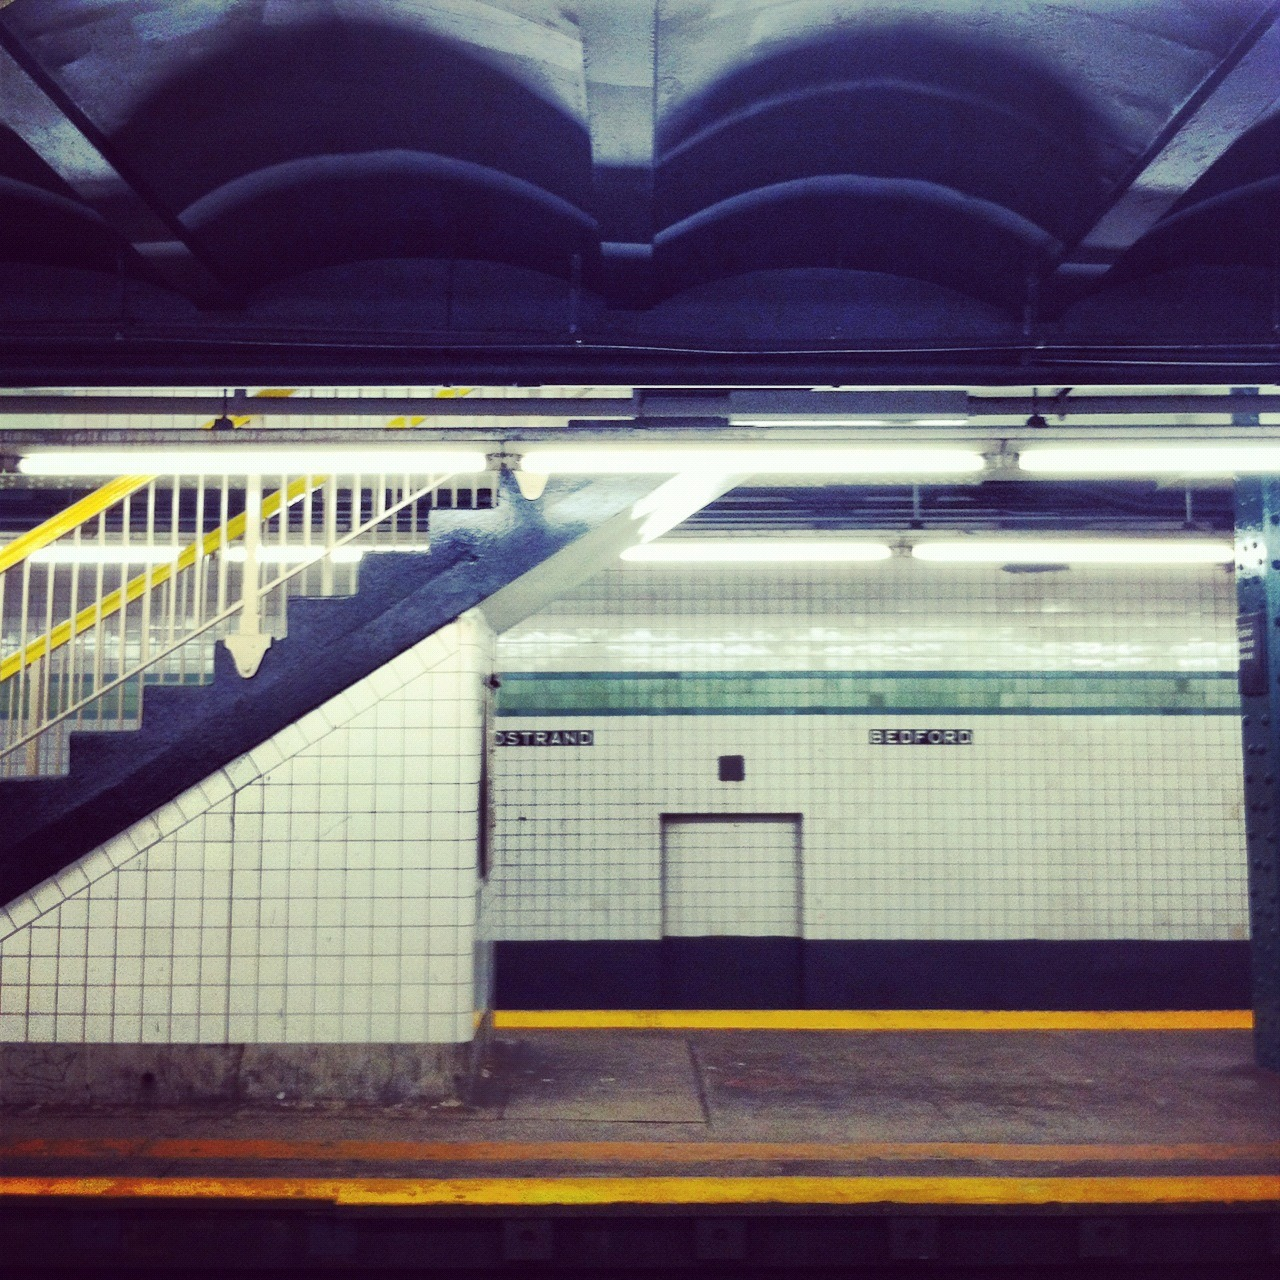 Testing out a new series on IPhone / Instagram, Empty Platforms and Subway Stations. Playing with the idea of just continuing it on iPhone…